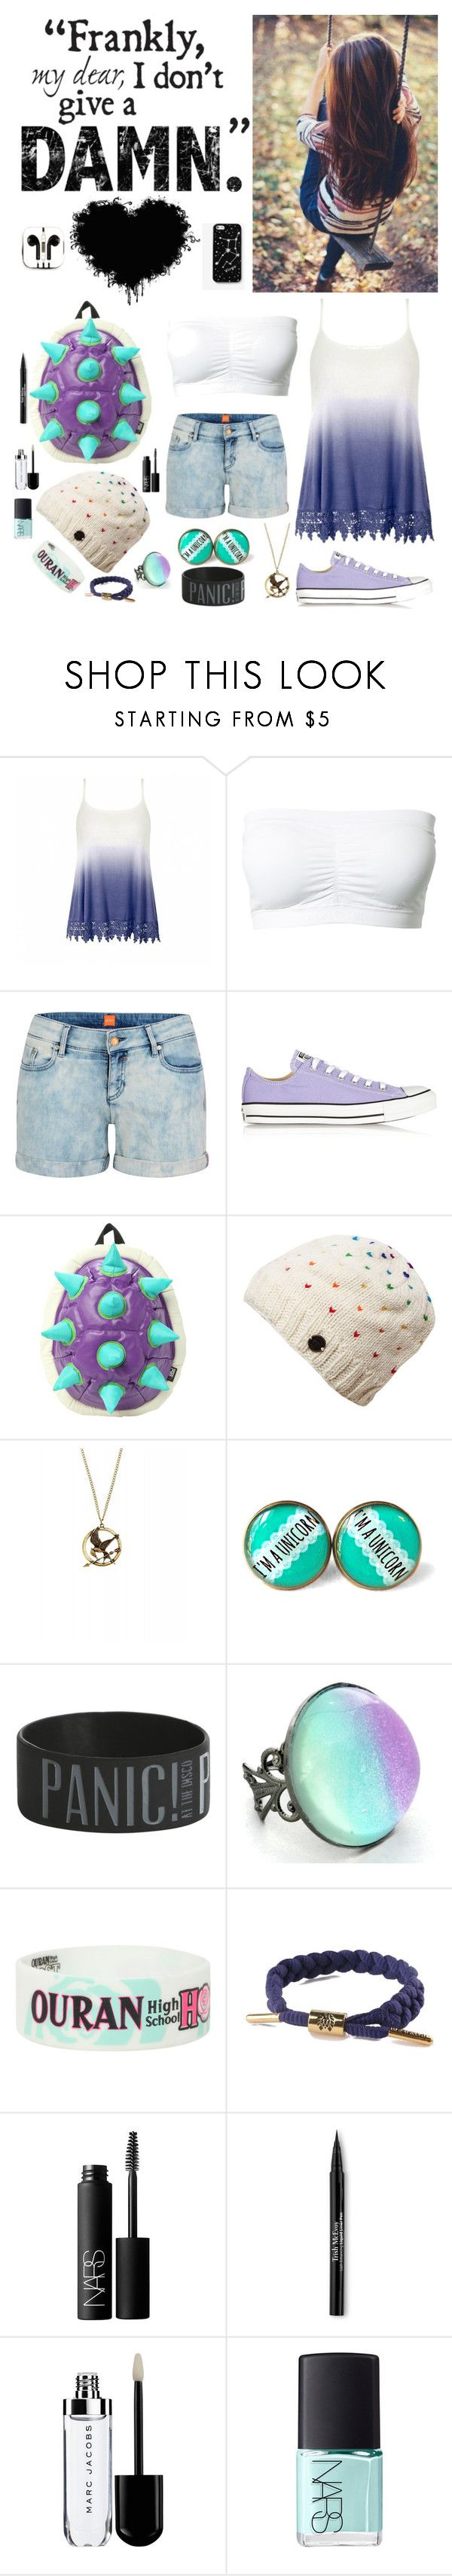 """""""""""This is me"""" - Elena (myself)"""" by nationalnerd ❤ liked on Polyvore featuring Ally Fashion, Magic, BOSS Orange, Converse, Rastaclat, NARS Cosmetics, Trish McEvoy, Kate Spade Saturday and PhunkeeTree"""